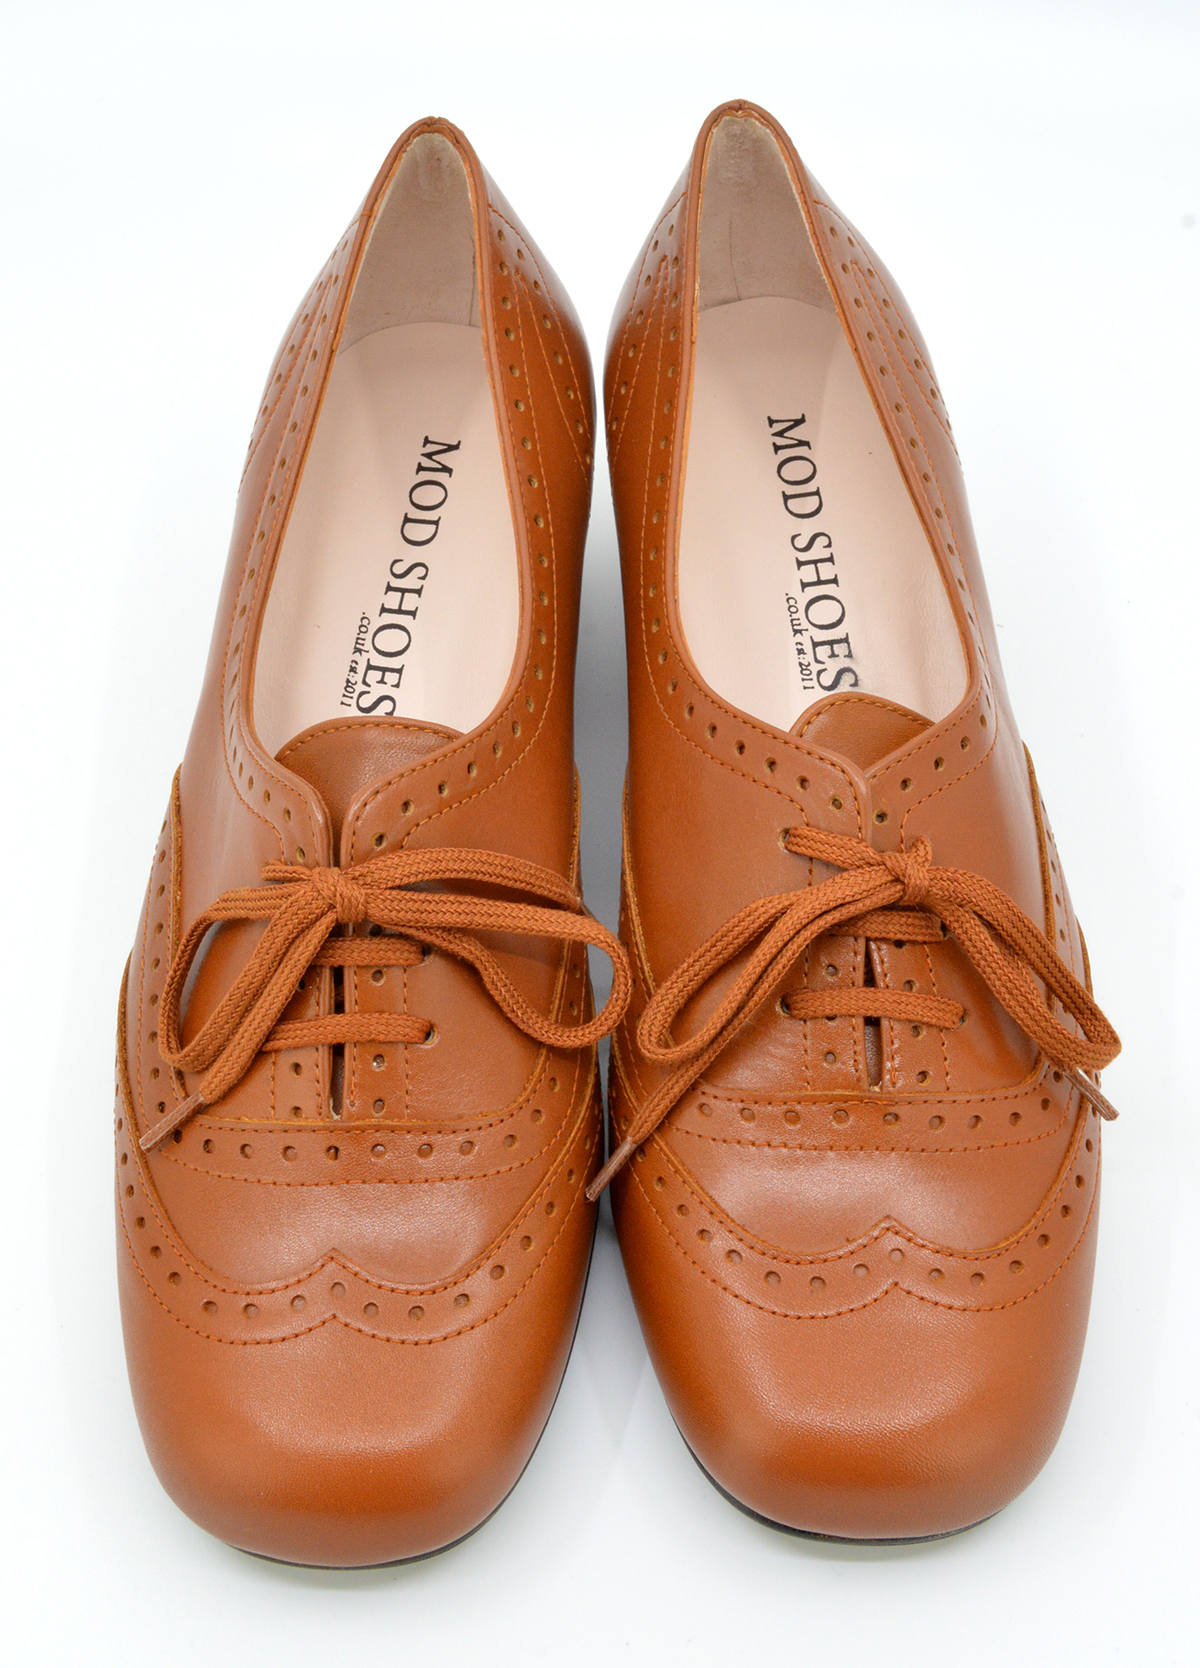 e88fbc440fa37 The Faye Brogue In Salted Caramel Leather - Vintage Style Ladies Shoes